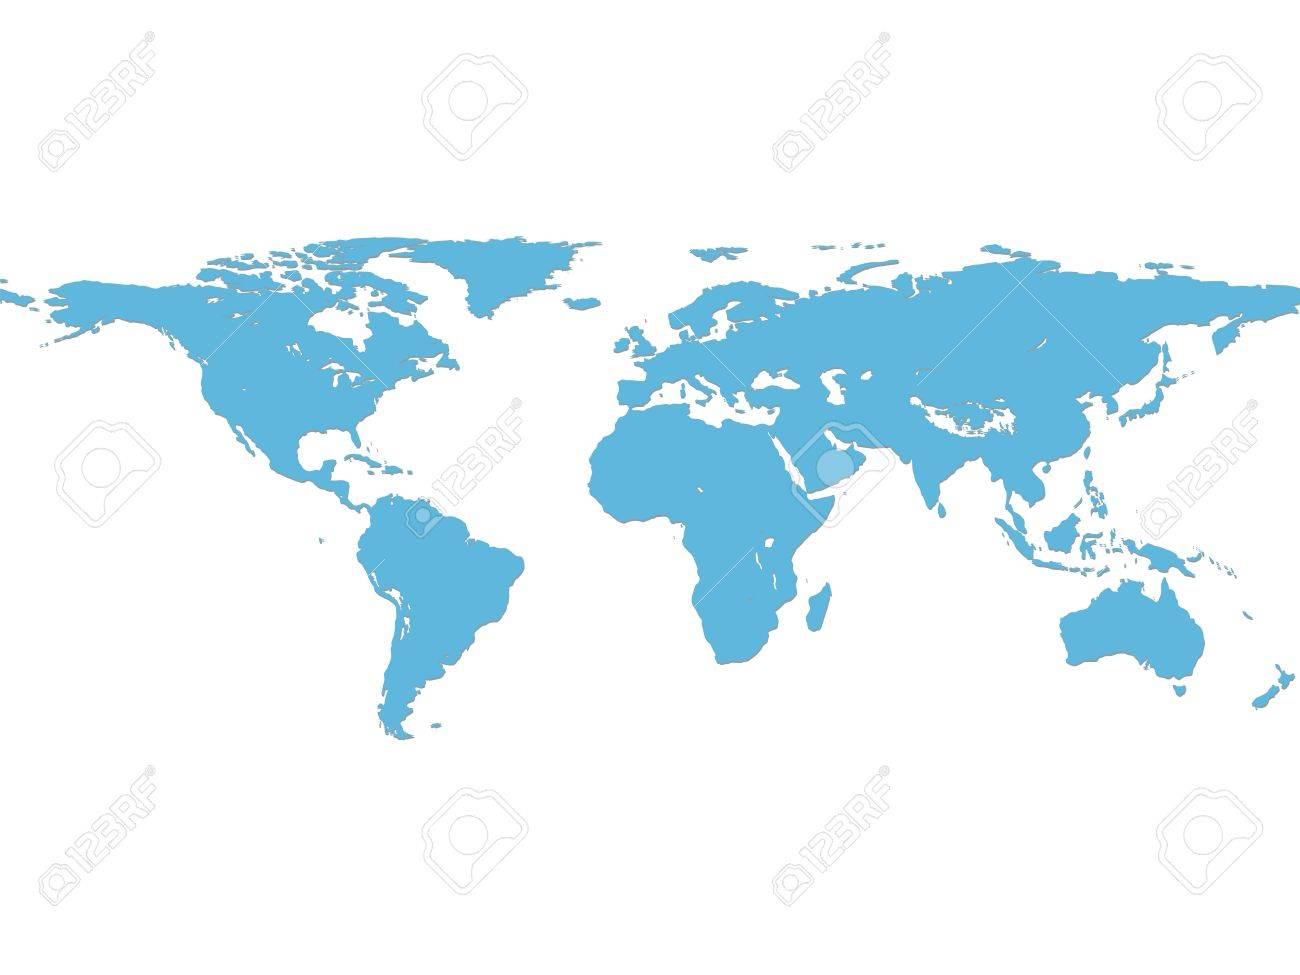 Illustration World Map With Light Blue Color Royalty Free Cliparts - World map in blue color